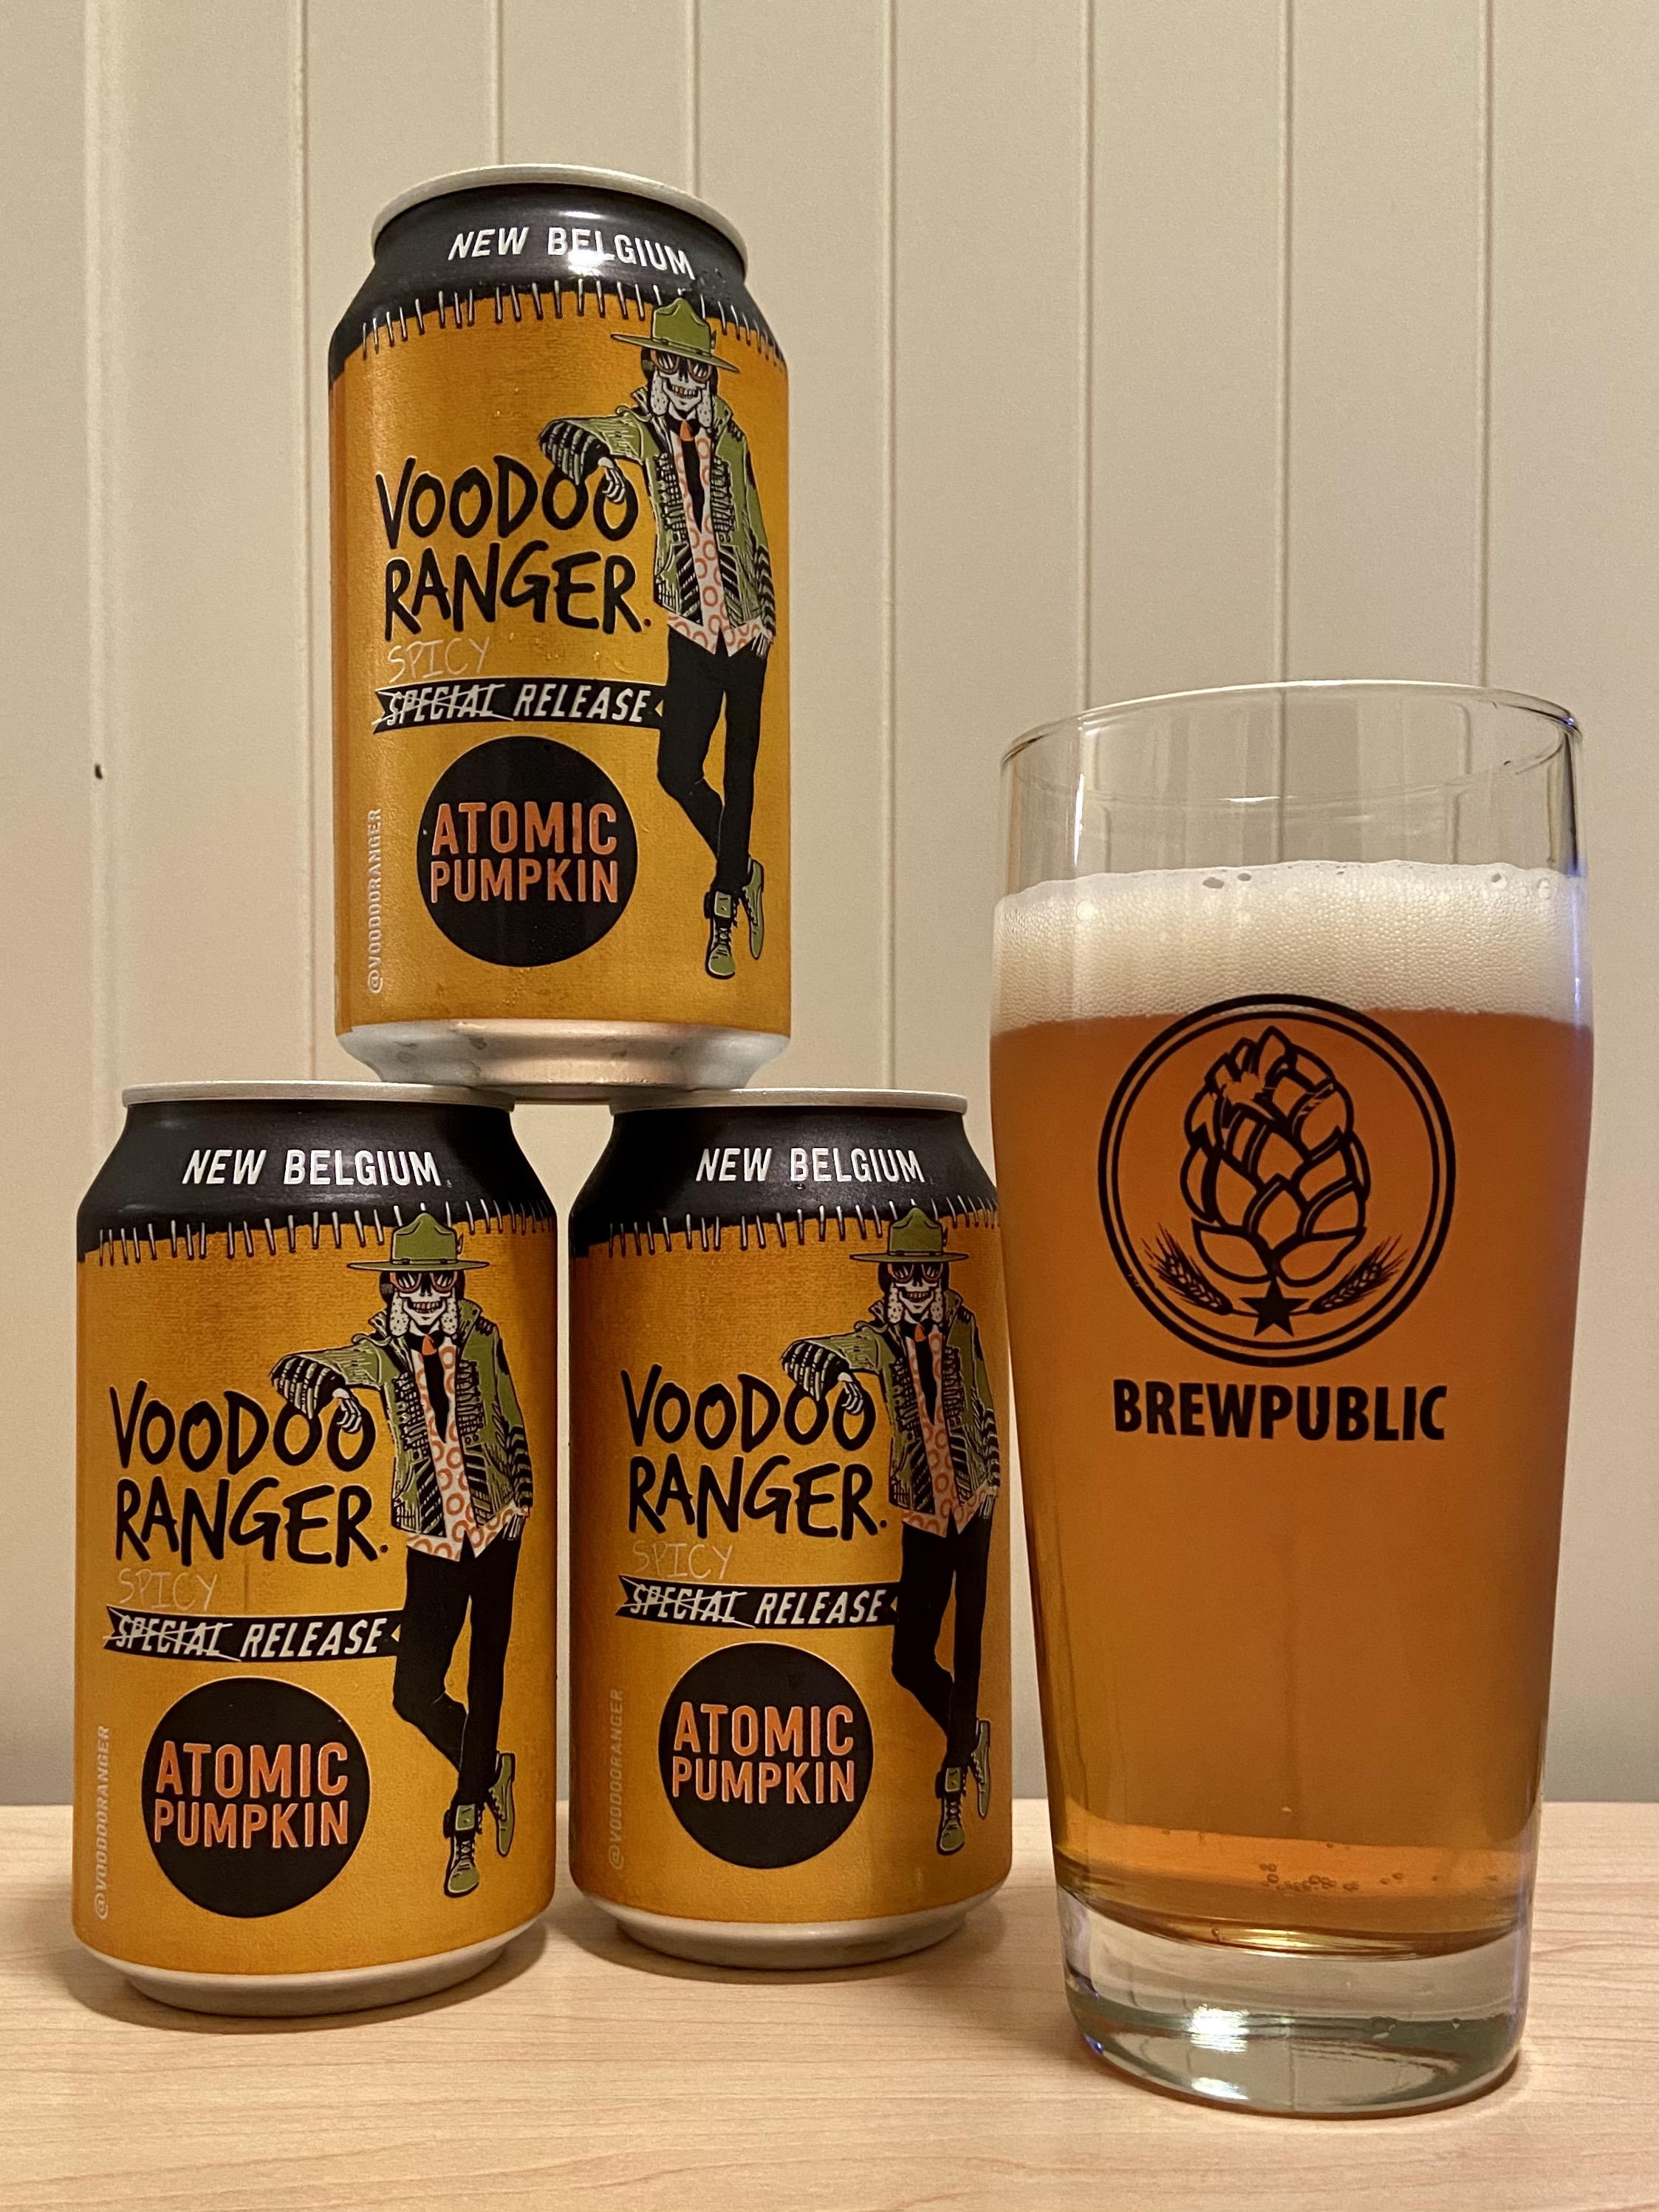 Cans of New Belgium Voodoo Ranger Atomic Pumpkin Ale served in a BREWPUBLIC glass.